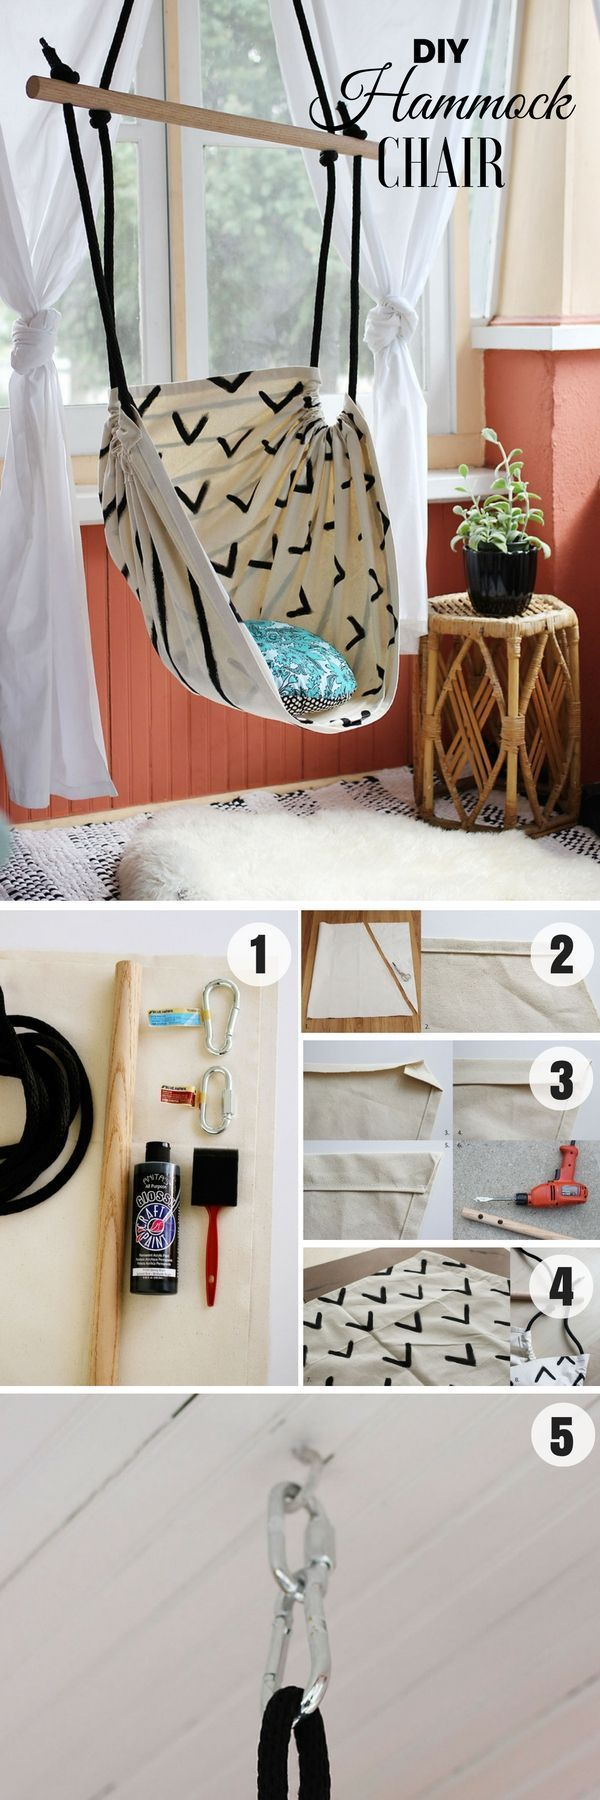 16 Beautiful DIY Bedroom Decor Ideas That